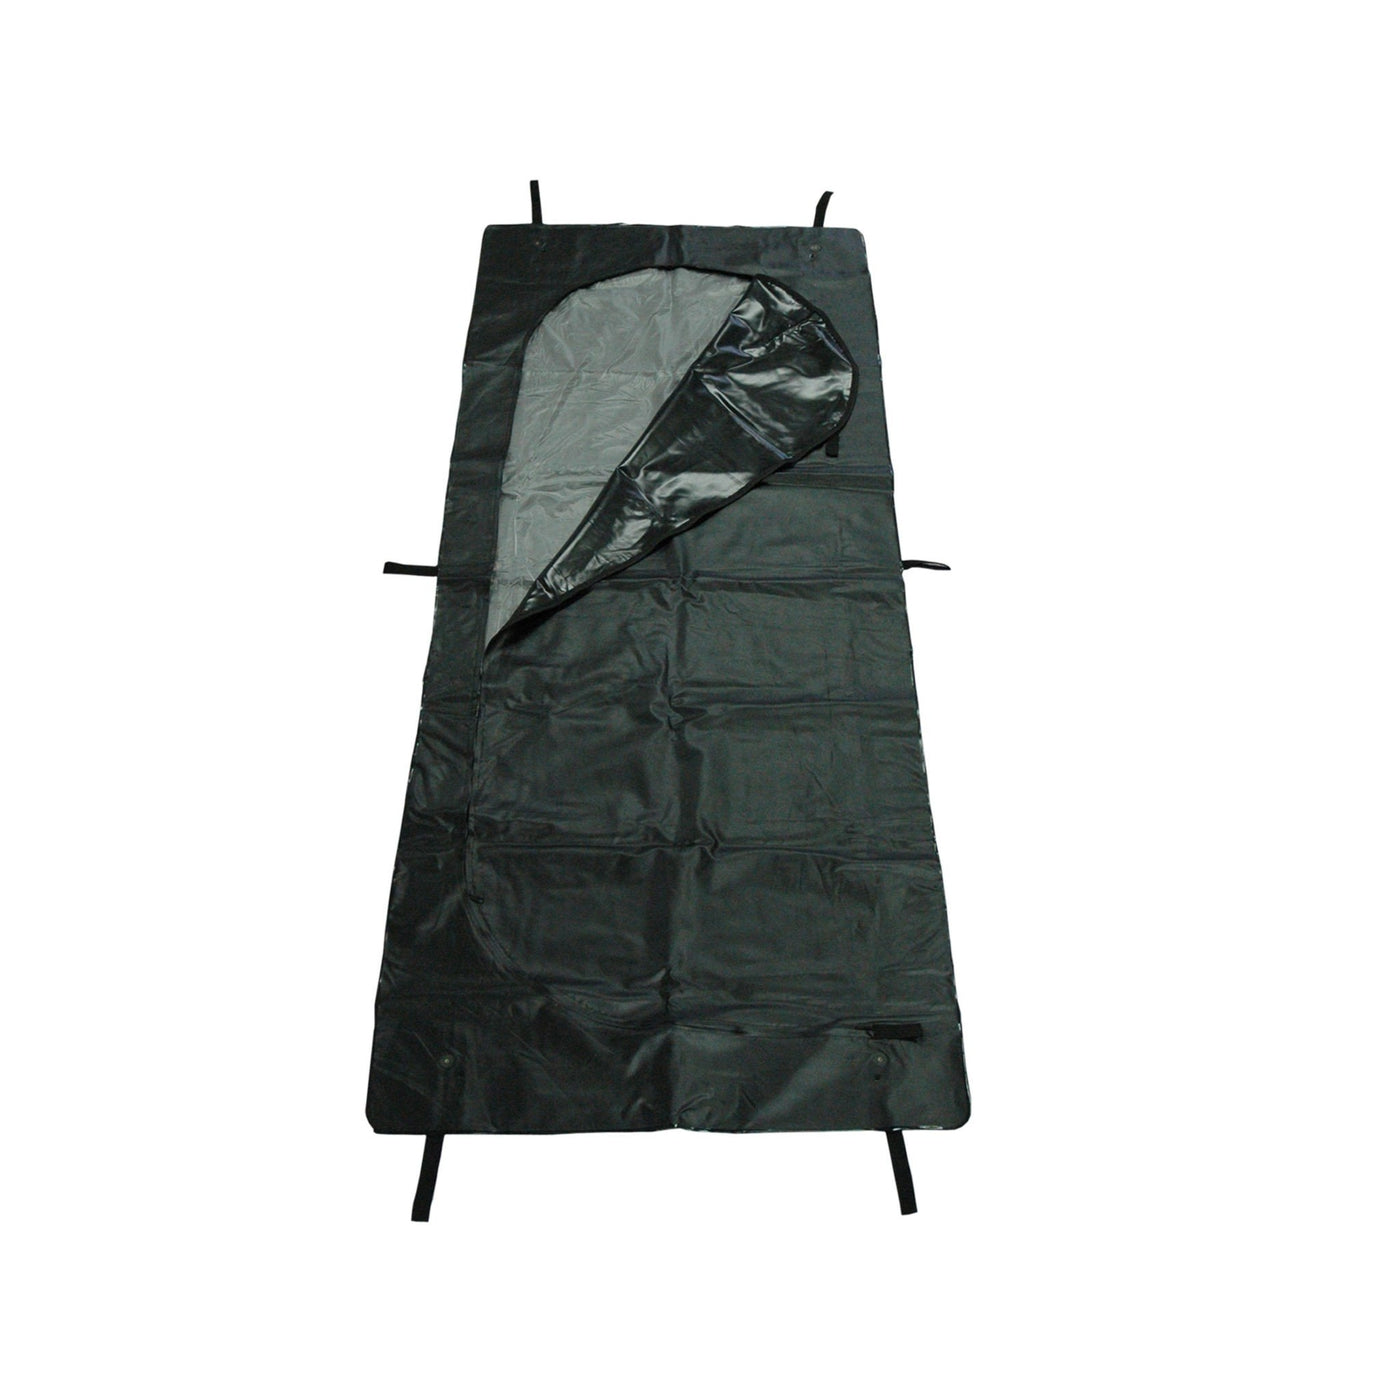 Heavy Duty Body Bags-Laboratory Accessory-Mortech Manufacturing Company Inc. Quality Stainless Steel Autopsy, Morgue, Funeral Home, Necropsy, Veterinary / Anatomy, Dissection Equipment and Accessories